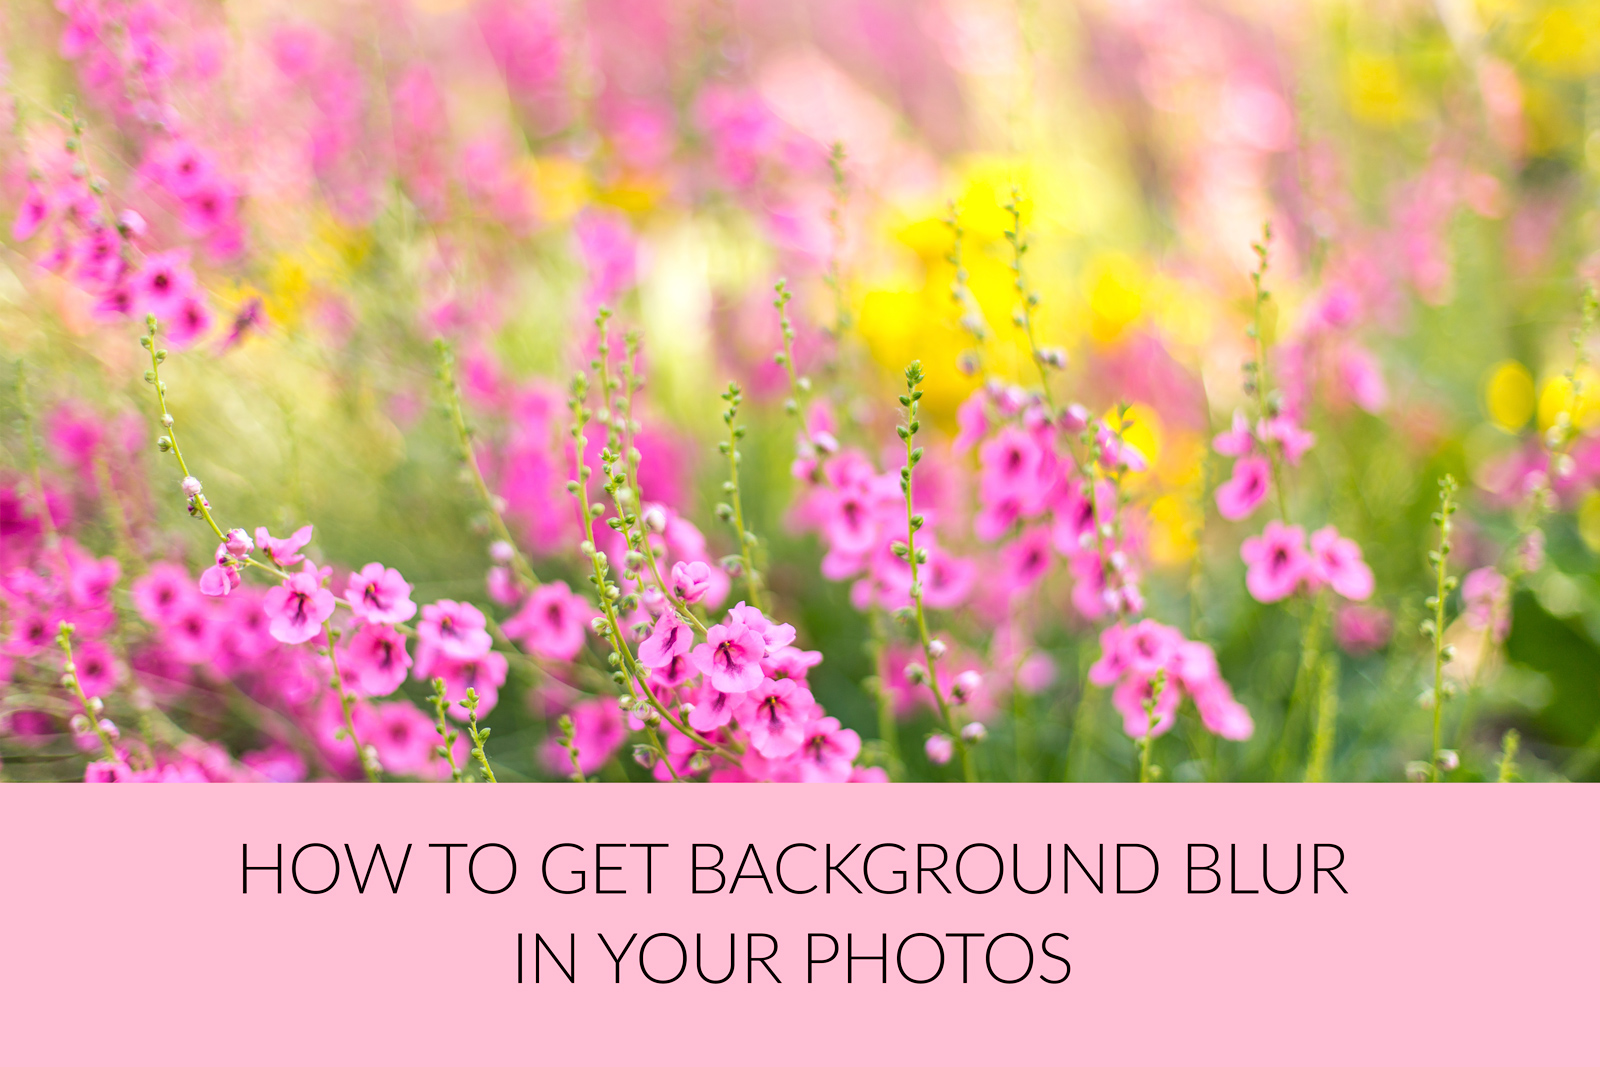 If you'd like to understand more about aperture and shallow depth of field, you might want to look at my post on How to get background blur in your photographs. -